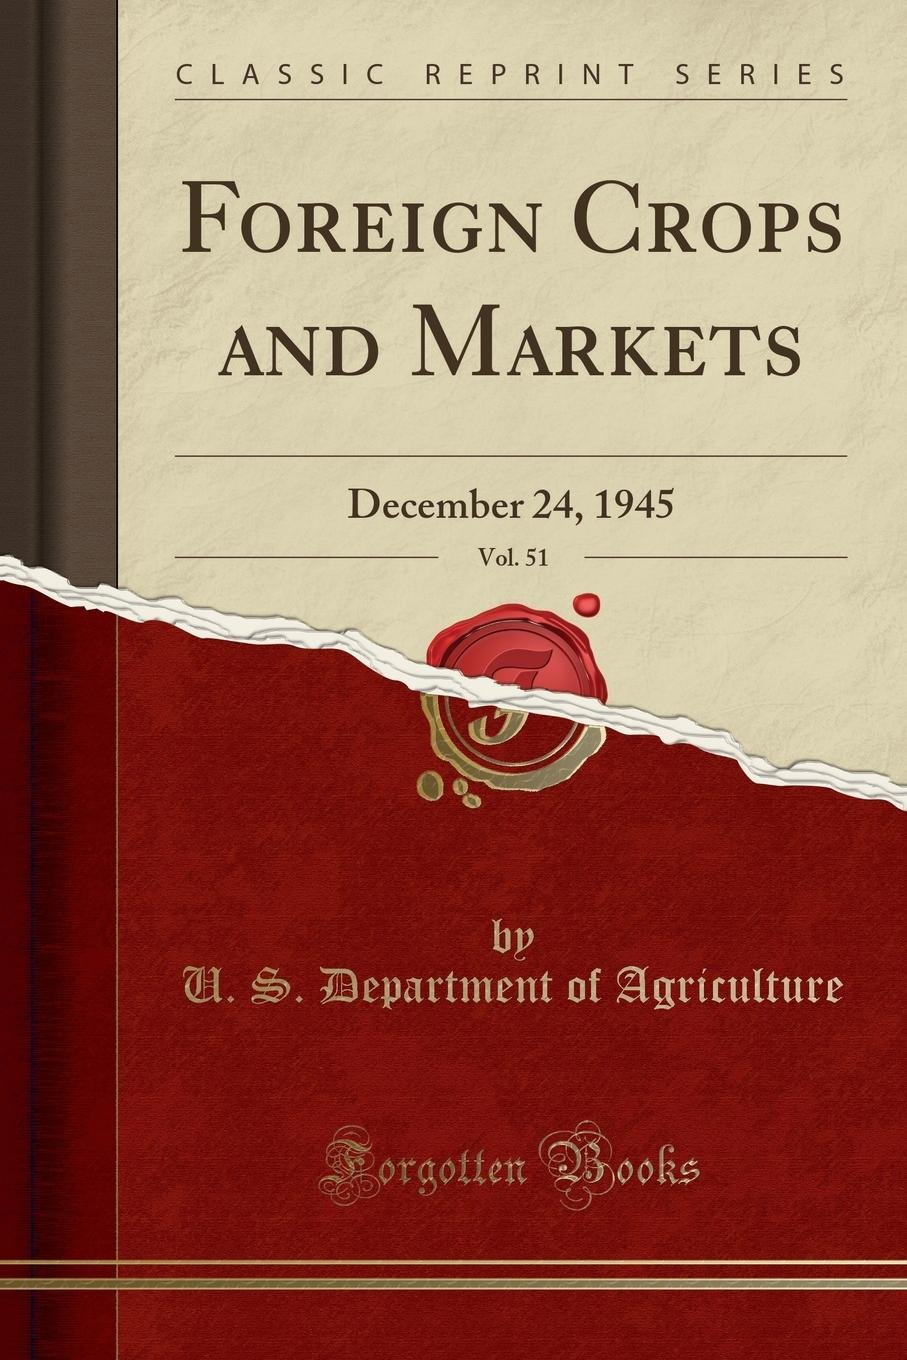 Foreign Crops and Markets, Vol. 51: December 24, 1945 (Classic Reprint) PDF